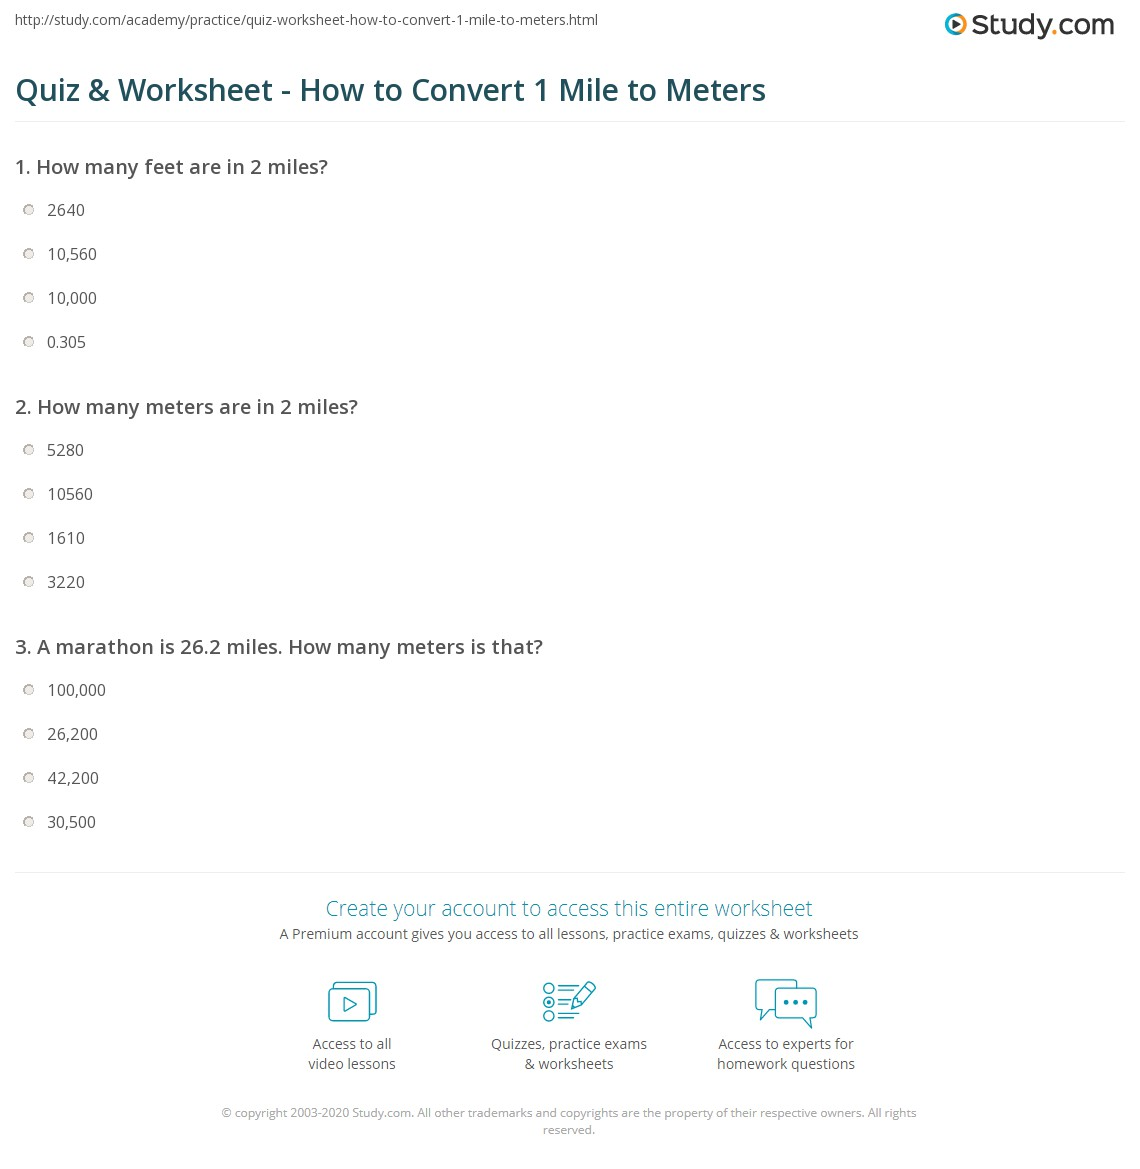 quiz & worksheet - how to convert 1 mile to meters | study